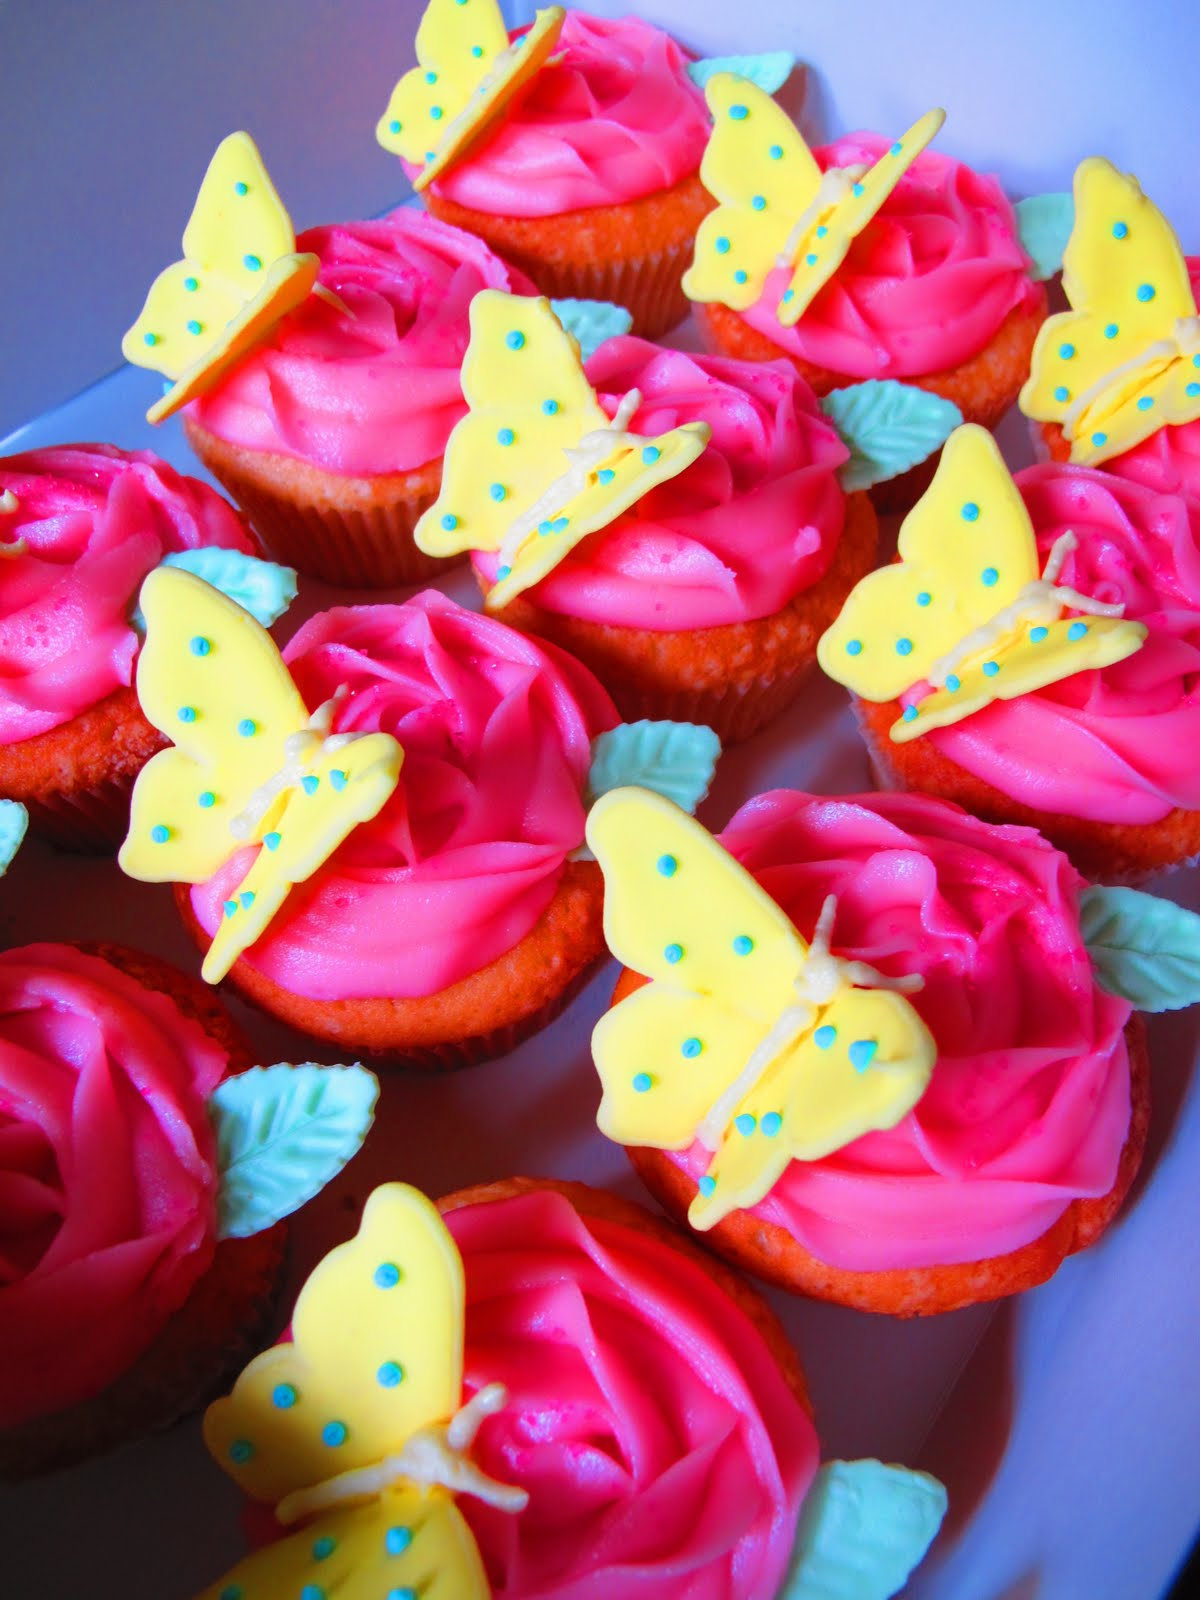 Butterfly Birthday Cake Cupcakes submited images